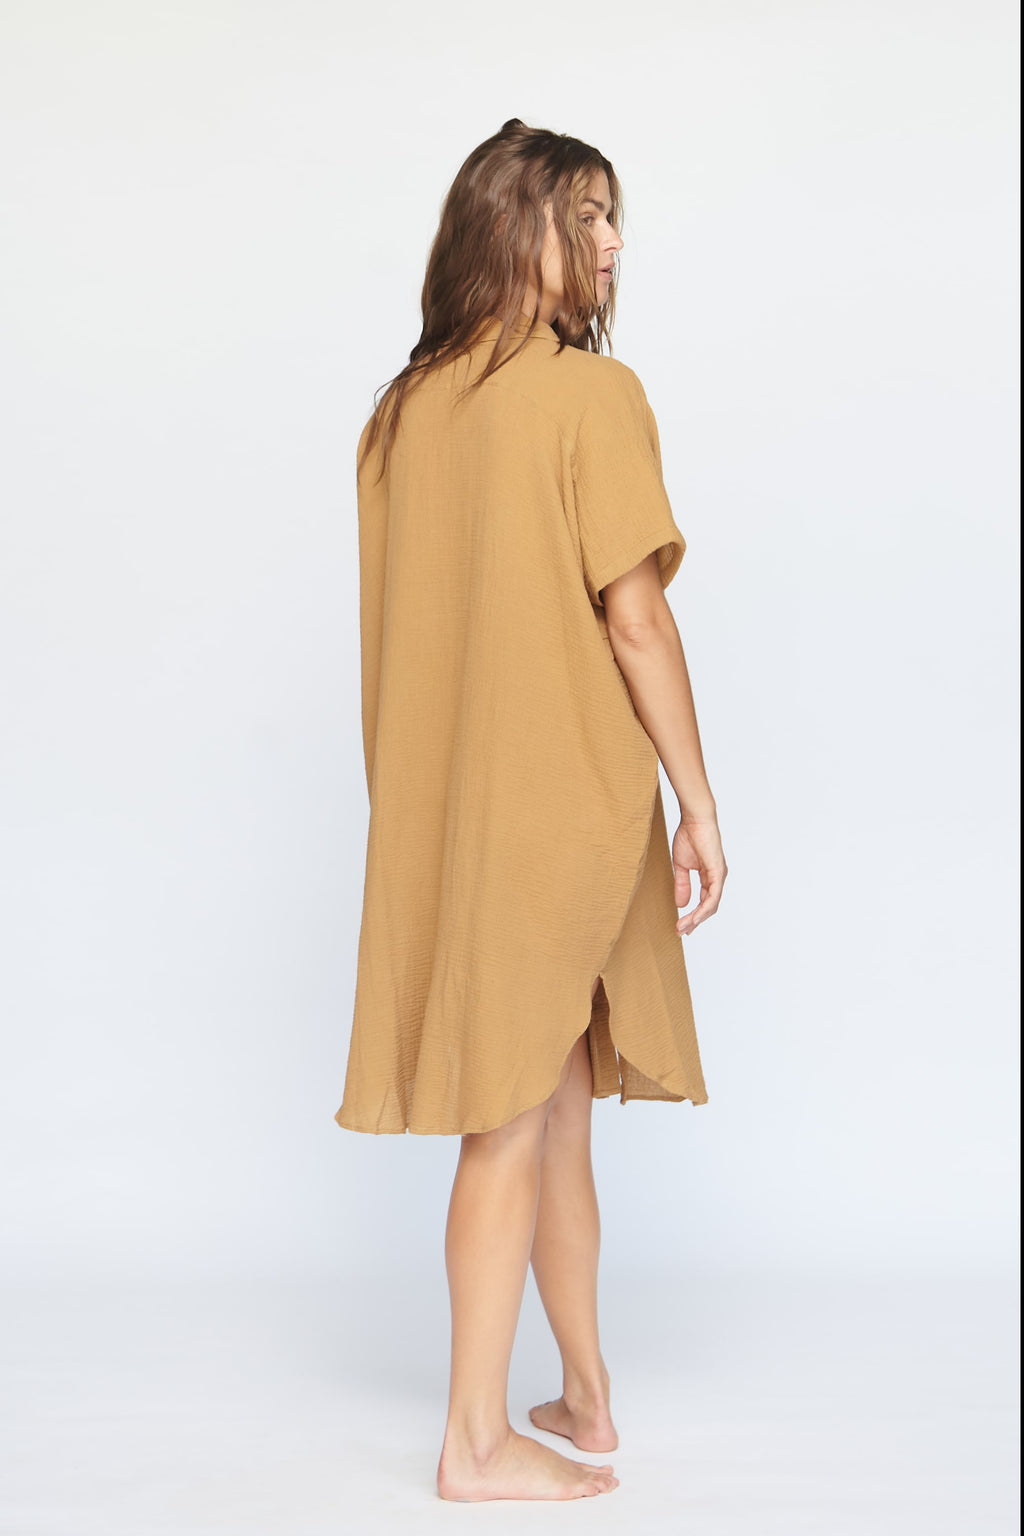 Koki Coverup/Dress Almond